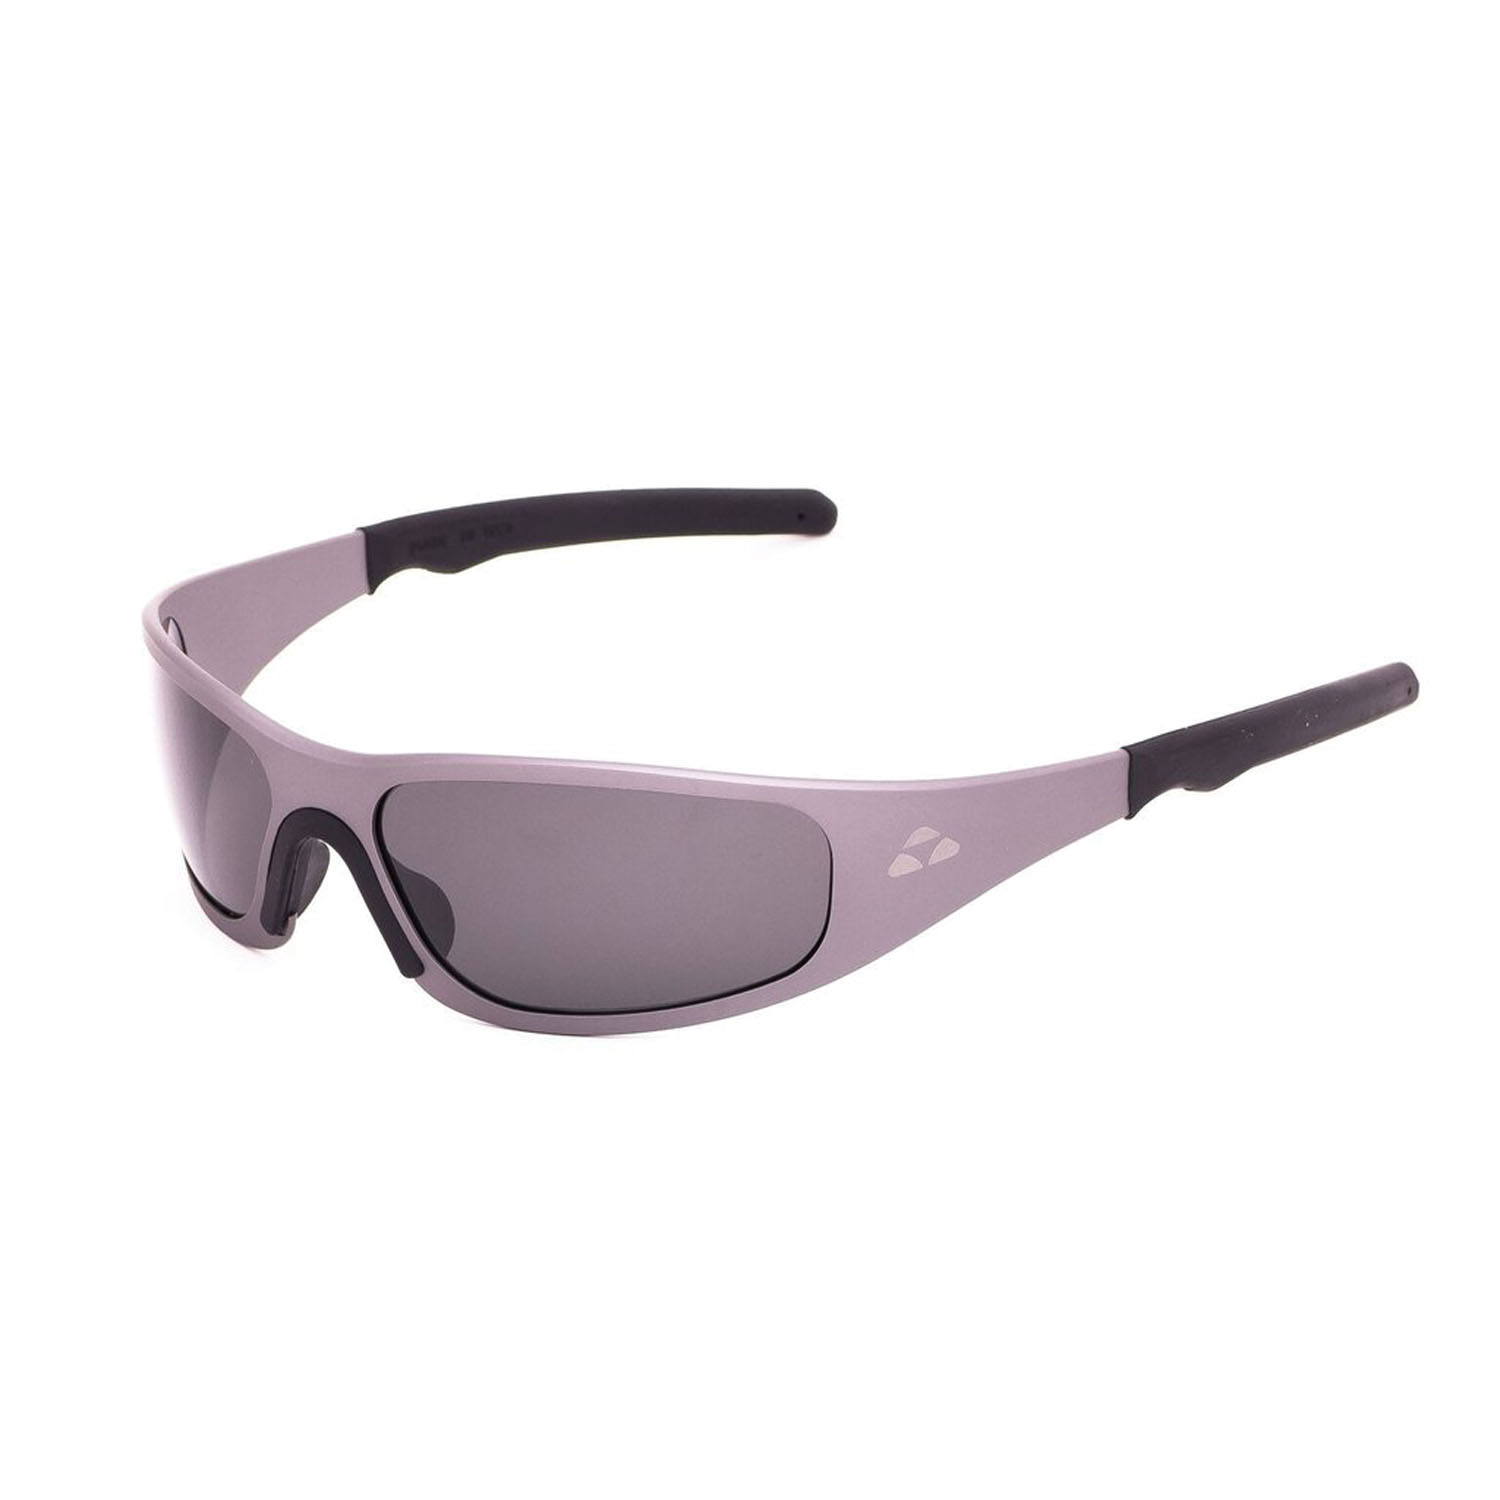 Liquid Eyewear Gasket Gun Metal w/ Smoke Polarized Lens